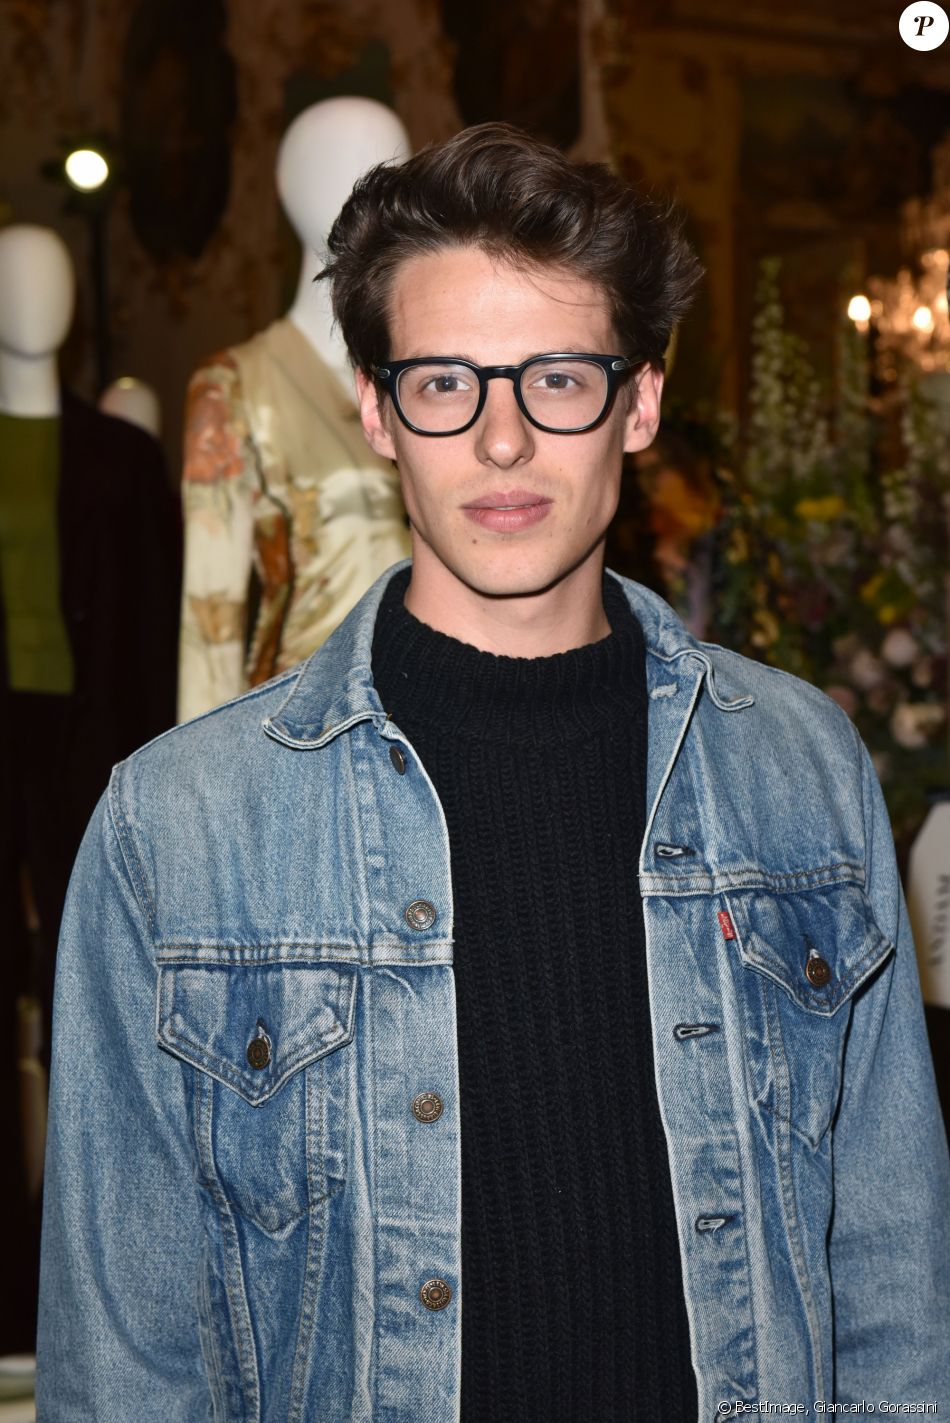 Germain Louvet lors de la soirée d'anniversaire de Matchesfashion.com à Paris, France, le 19 avril 2017. © Giancarlo Gorassini/Bestimage